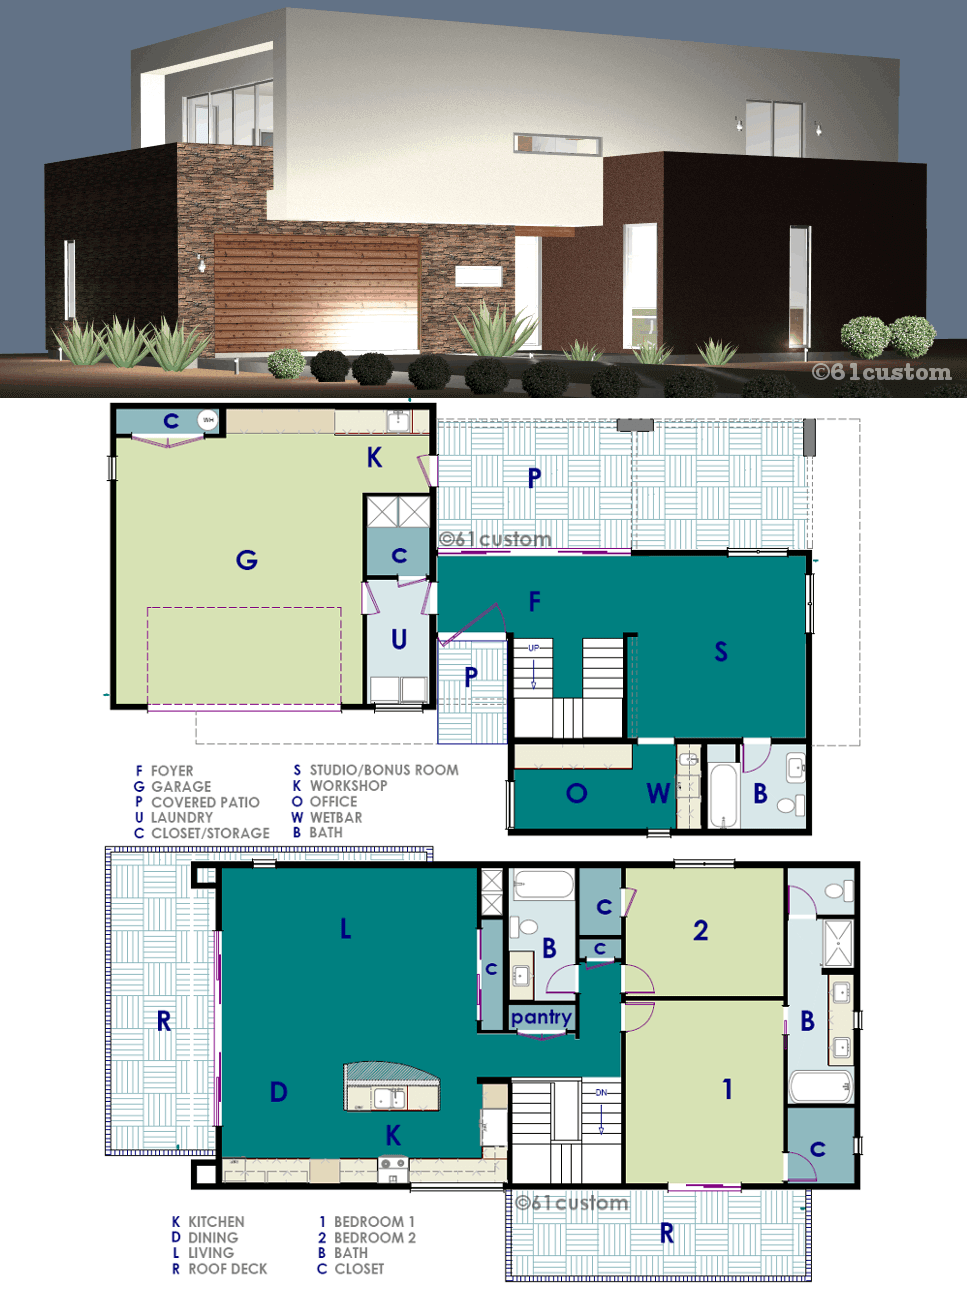 Ultra modern live work house plan 61custom for House eplans